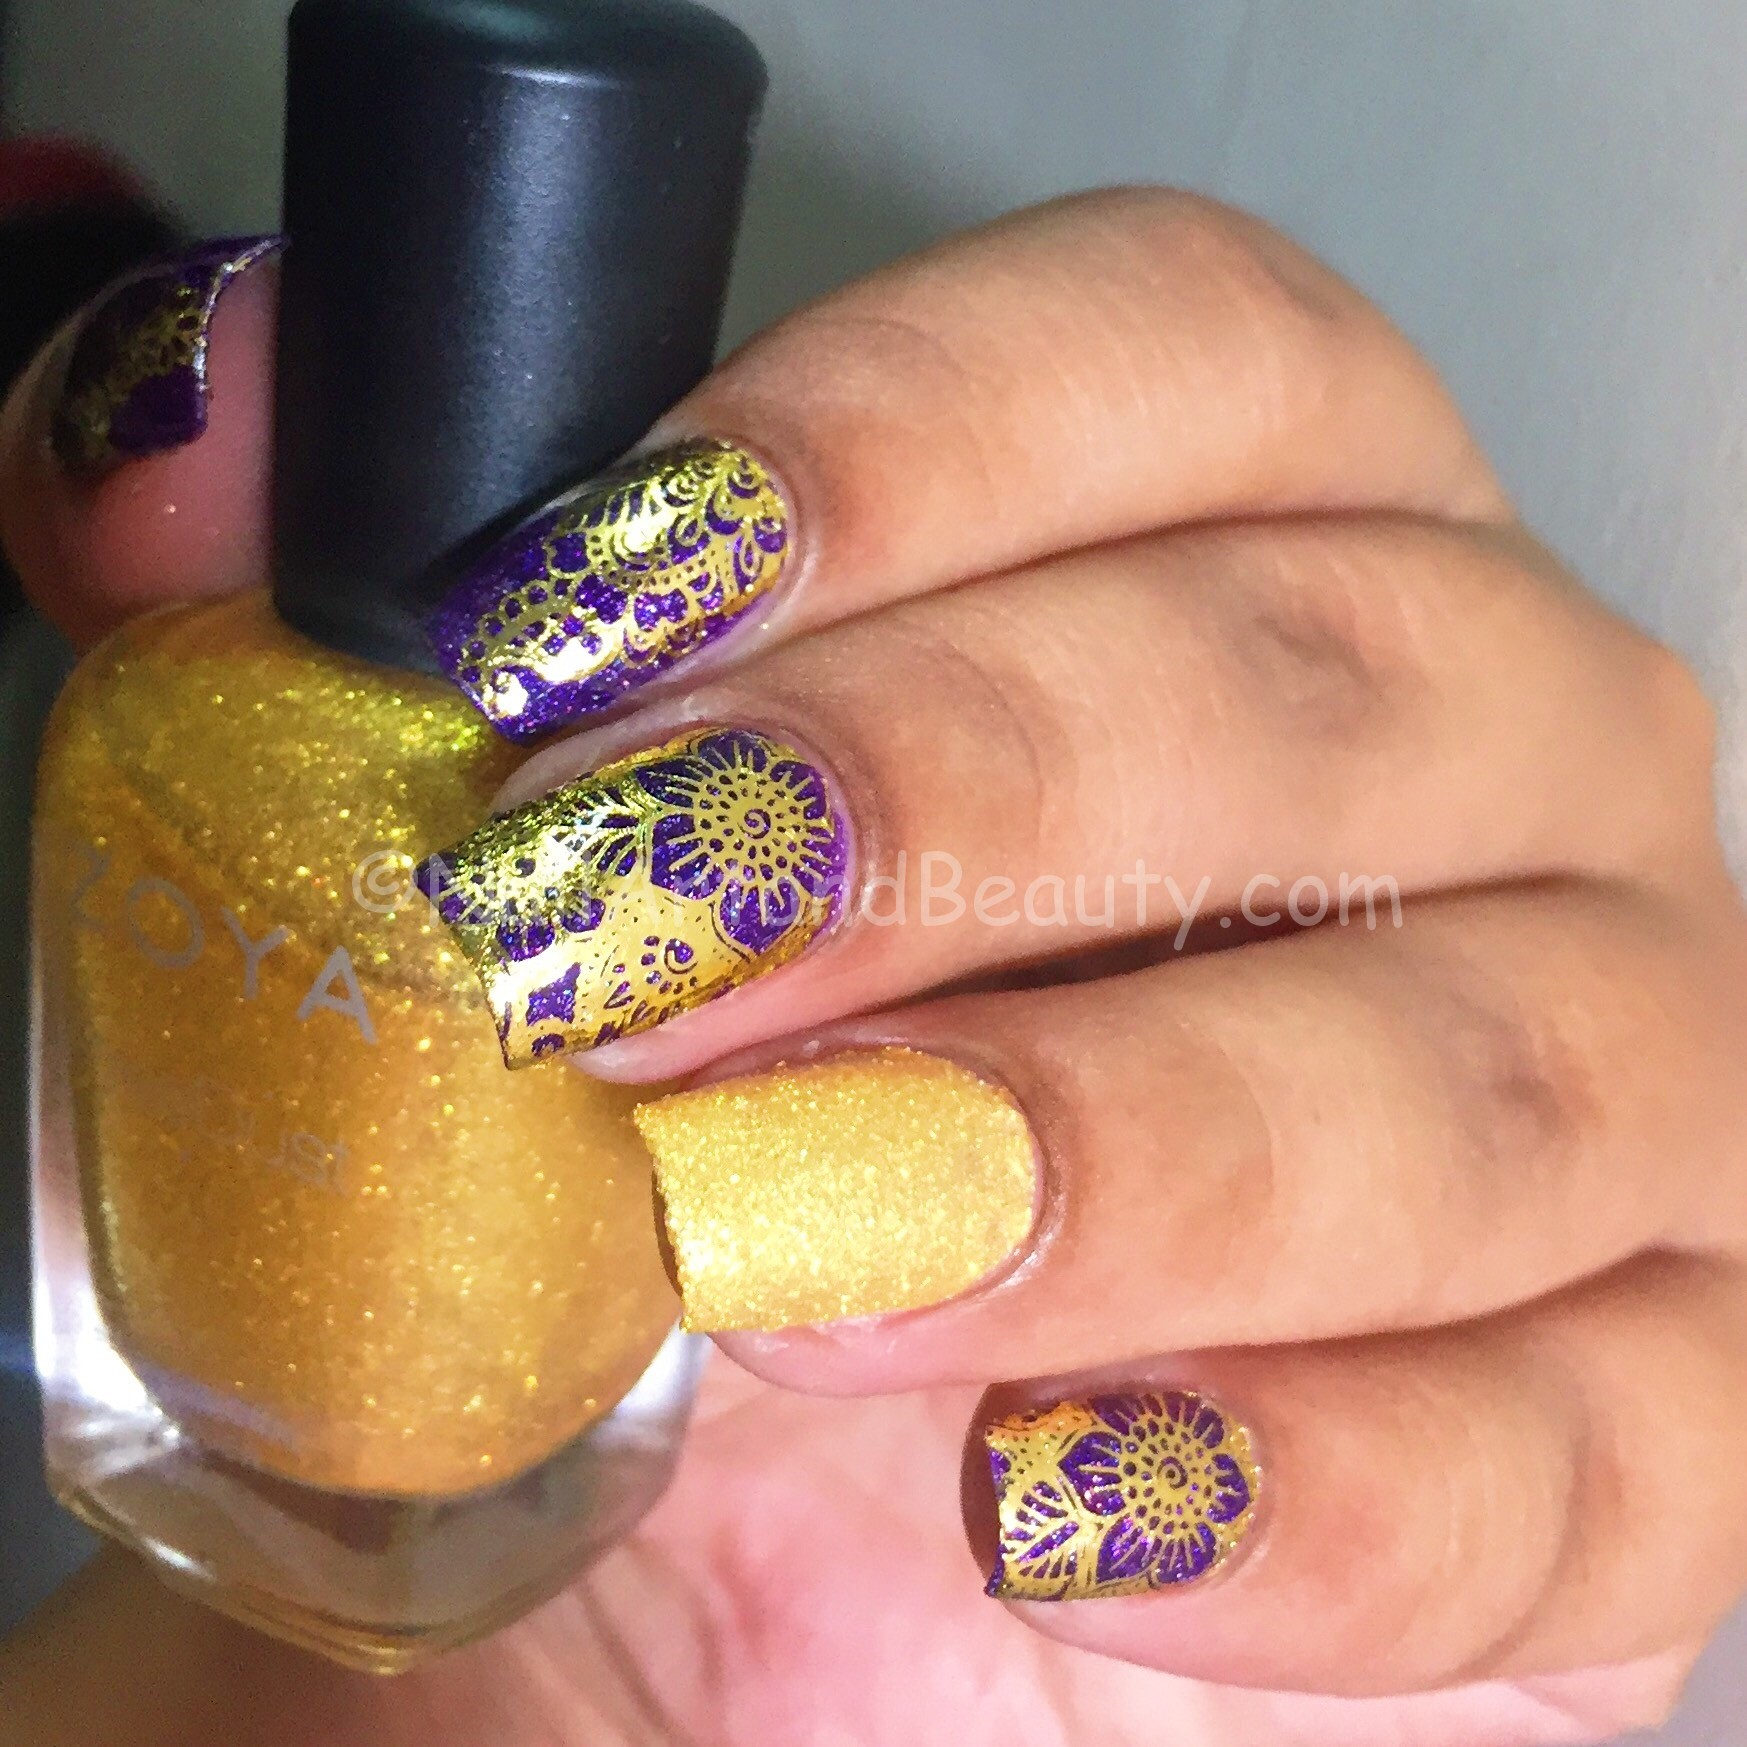 Arabesque Nails in Purple and Gold